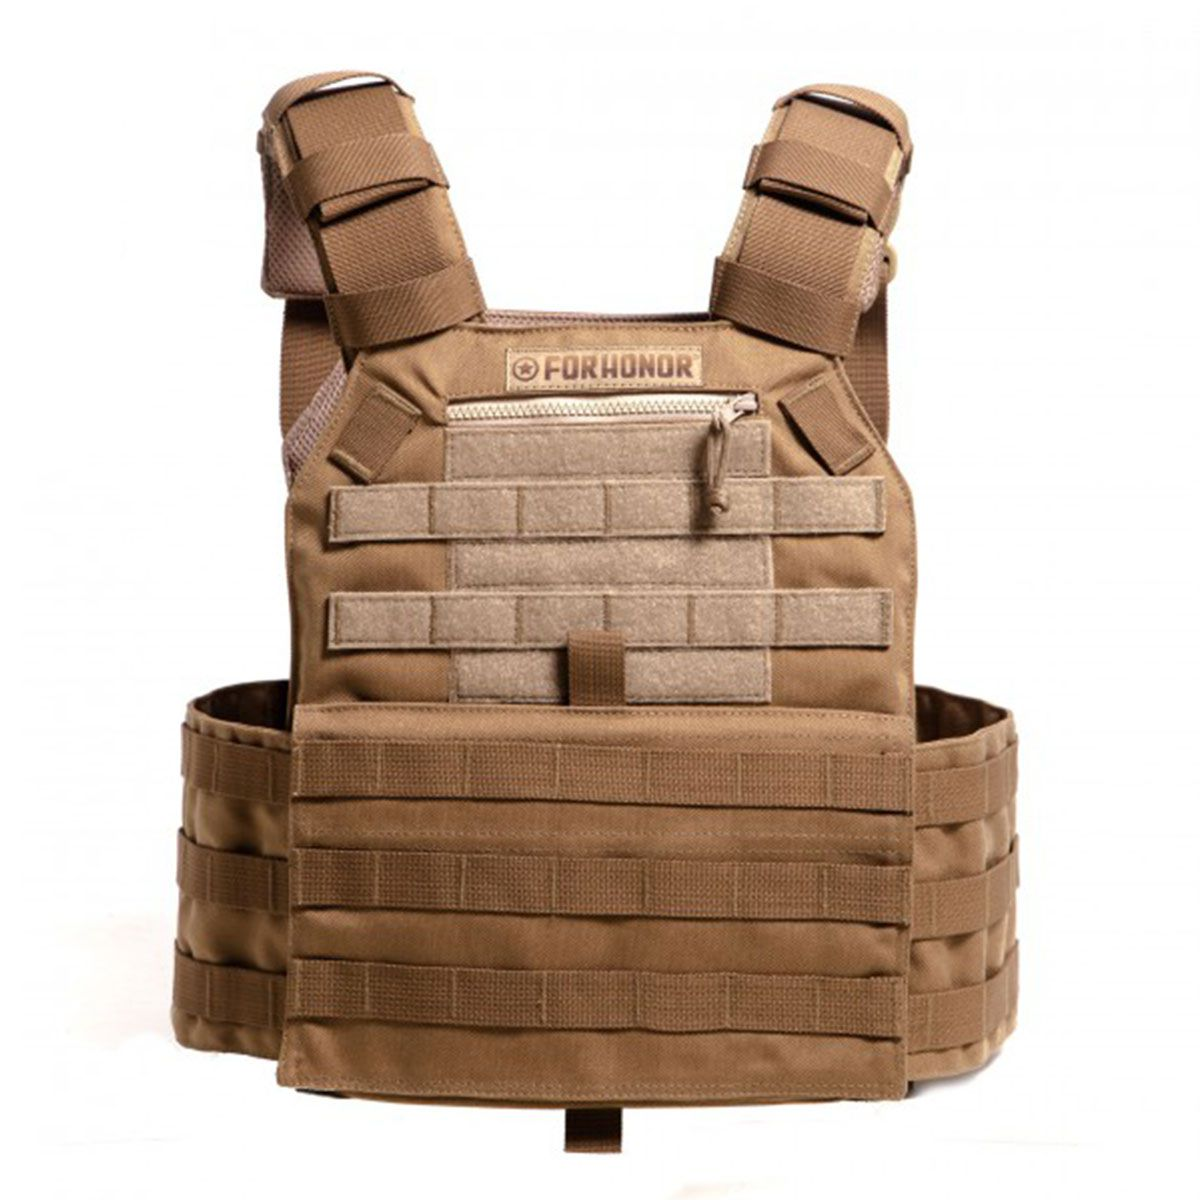 Colete Tático For Honor Plate Carrier Coyote